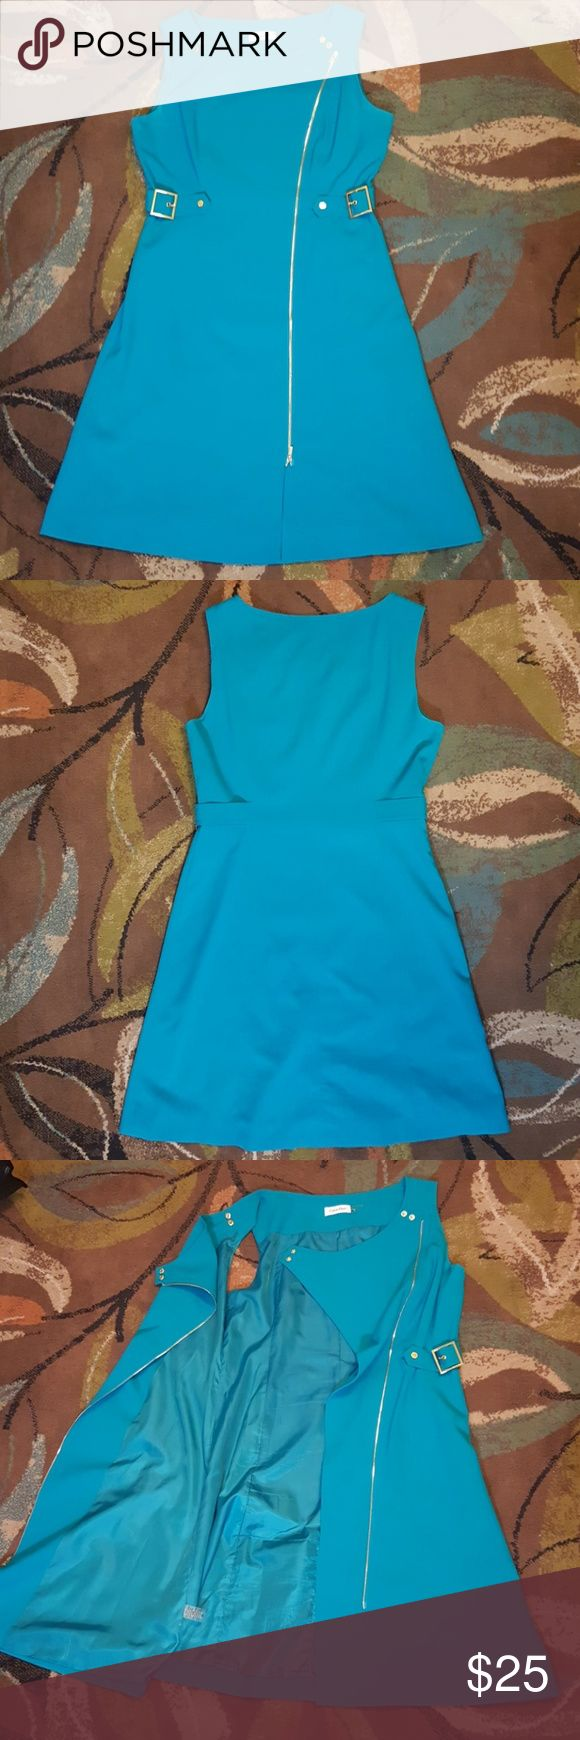 Cerulean Blue Calvin Klein Dress - Size 10 This dress has gold accents that pop against the blue. The buckles cinch the waist to give an hour glass figure. The entire dress unzips and unbuttons in the front if slipping over the head won't do, there are double zippers if you wanted to partly unzip the top or bottom. Its also surprisingly water resistant, water just beads up and runs off.    Dry clean only Calvin Klein Dresses